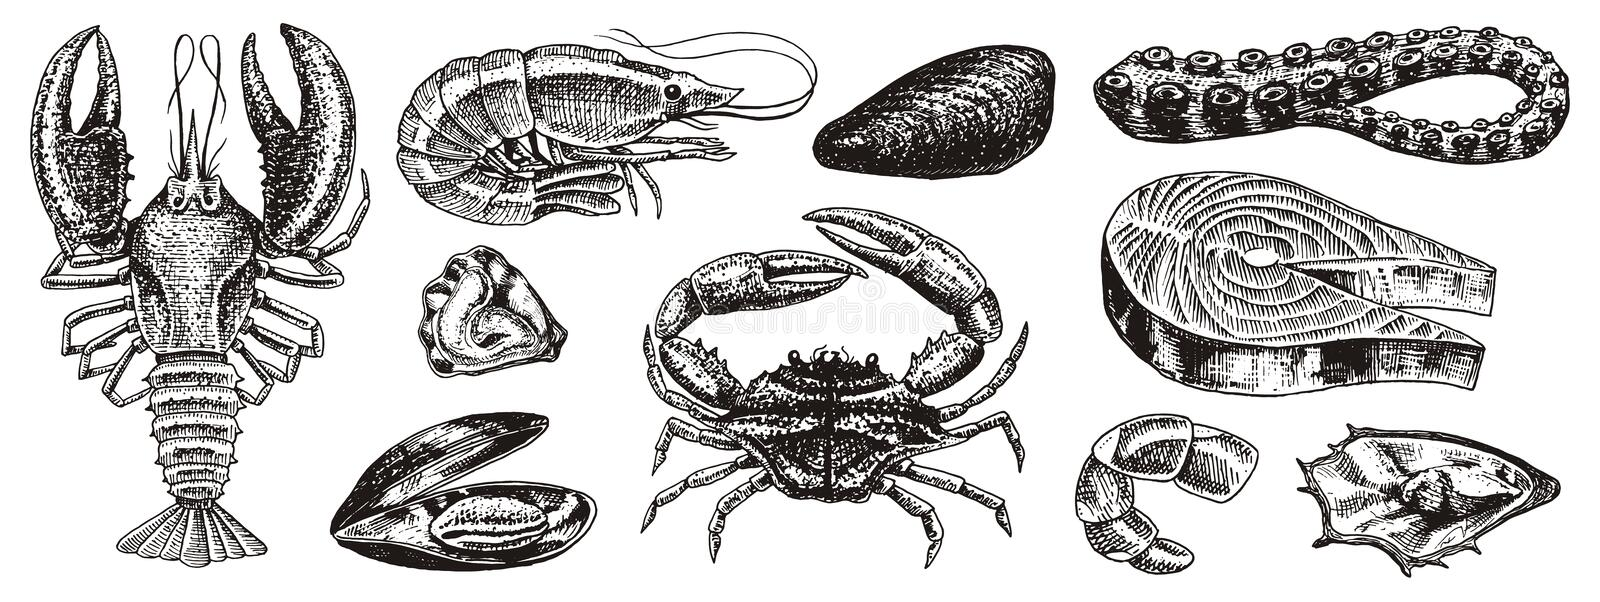 Crustaceans, shrimp, lobster or crayfish, crab with claws. River and lake or sea creatures. Freshwater aquarium. Poster royalty free illustration